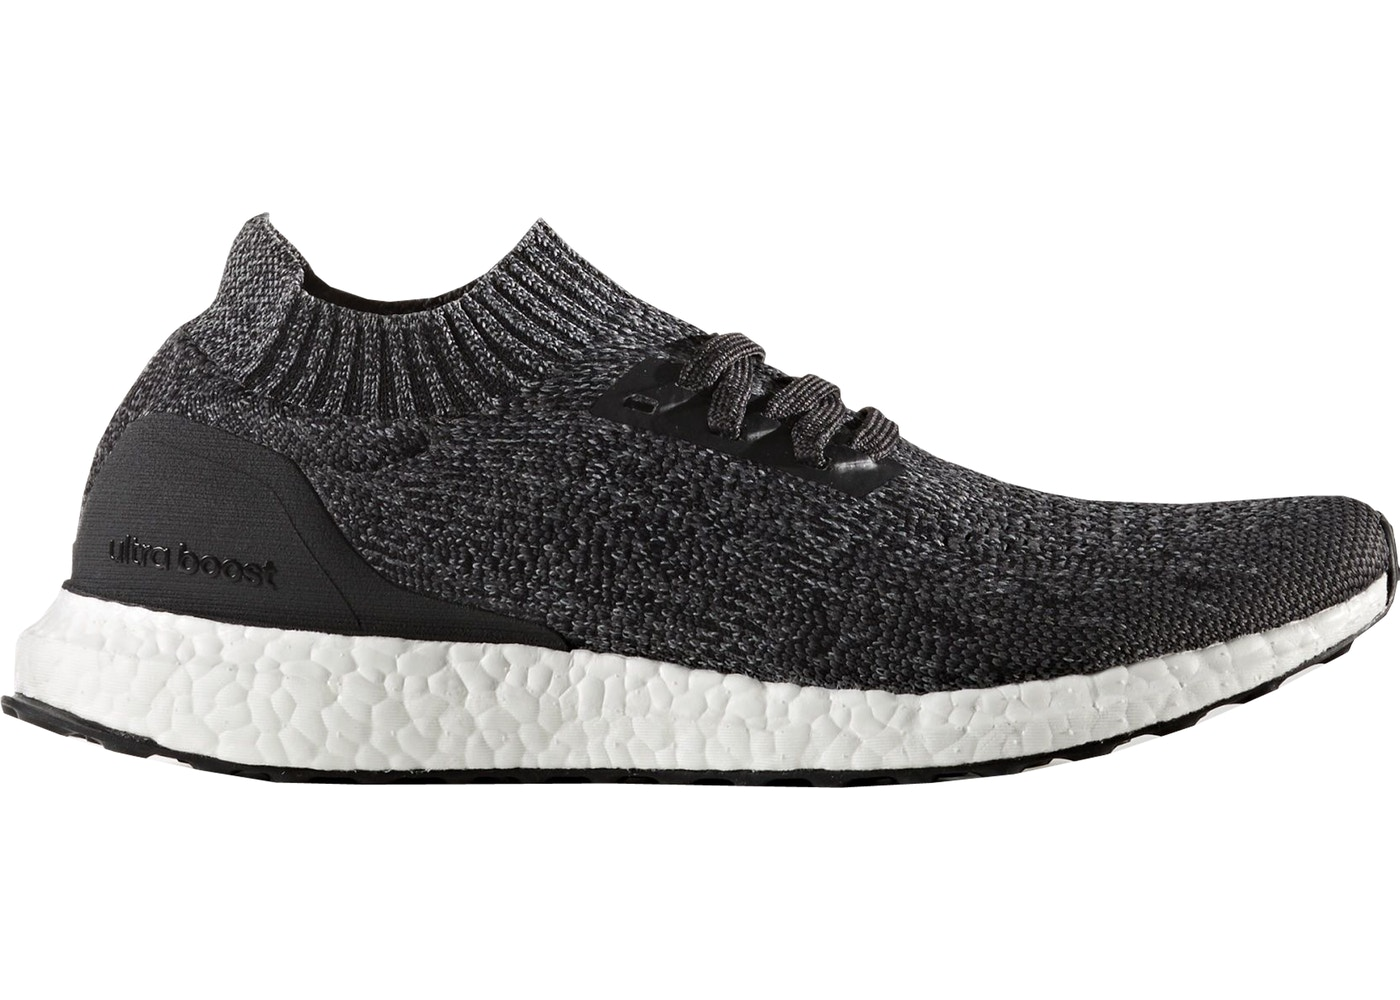 43aecbf9 Sell. or Ask. Size: 10.5. View All Bids. adidas Ultra Boost Uncaged Black  ...